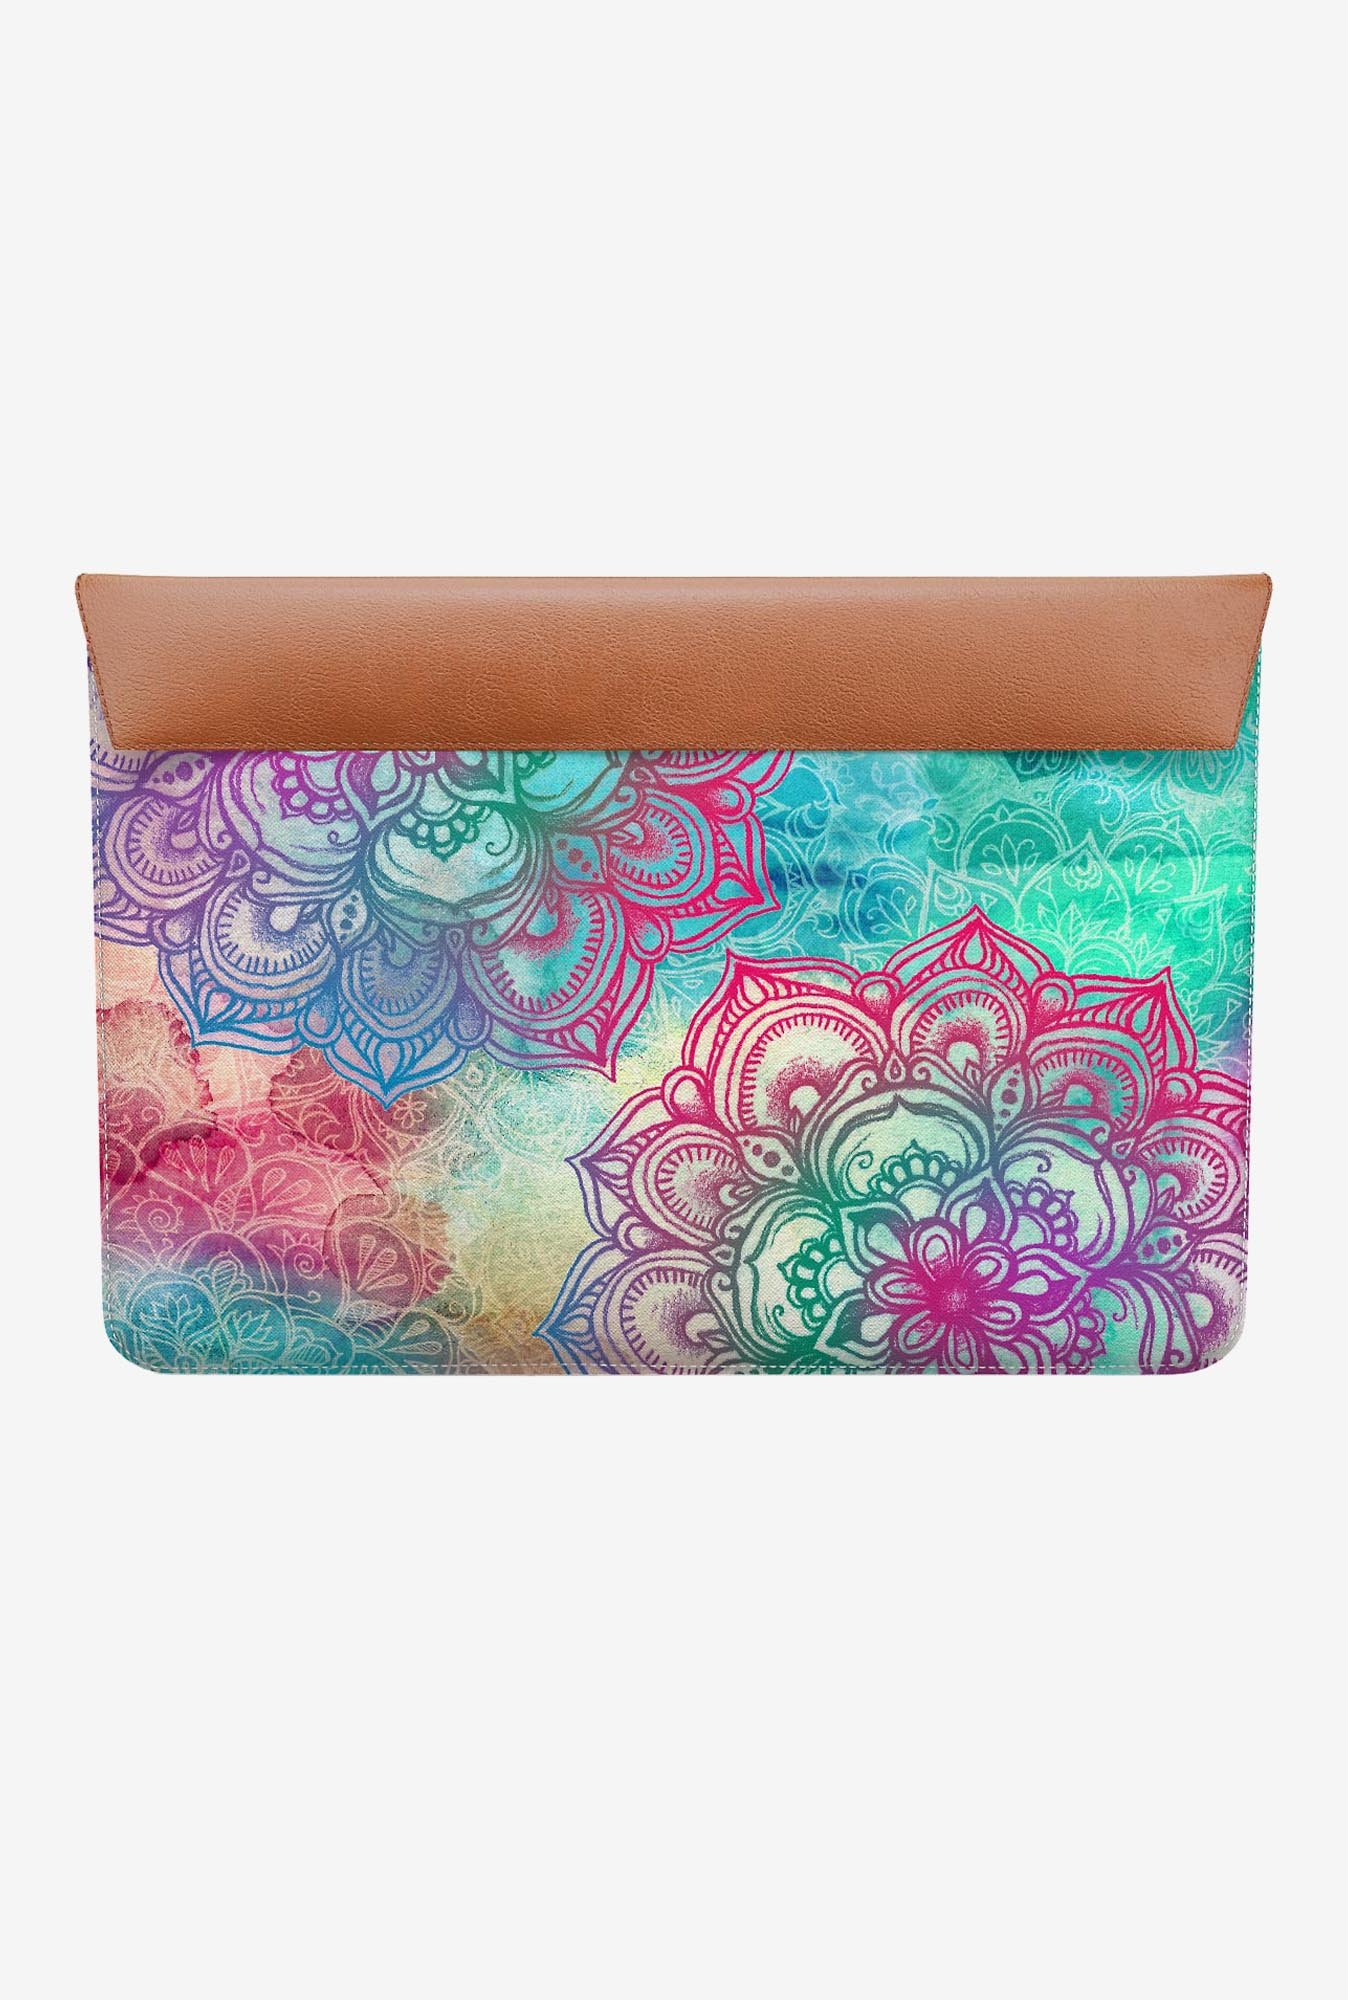 "DailyObjects Round And Round MacBook 12"" Envelope Sleeve"